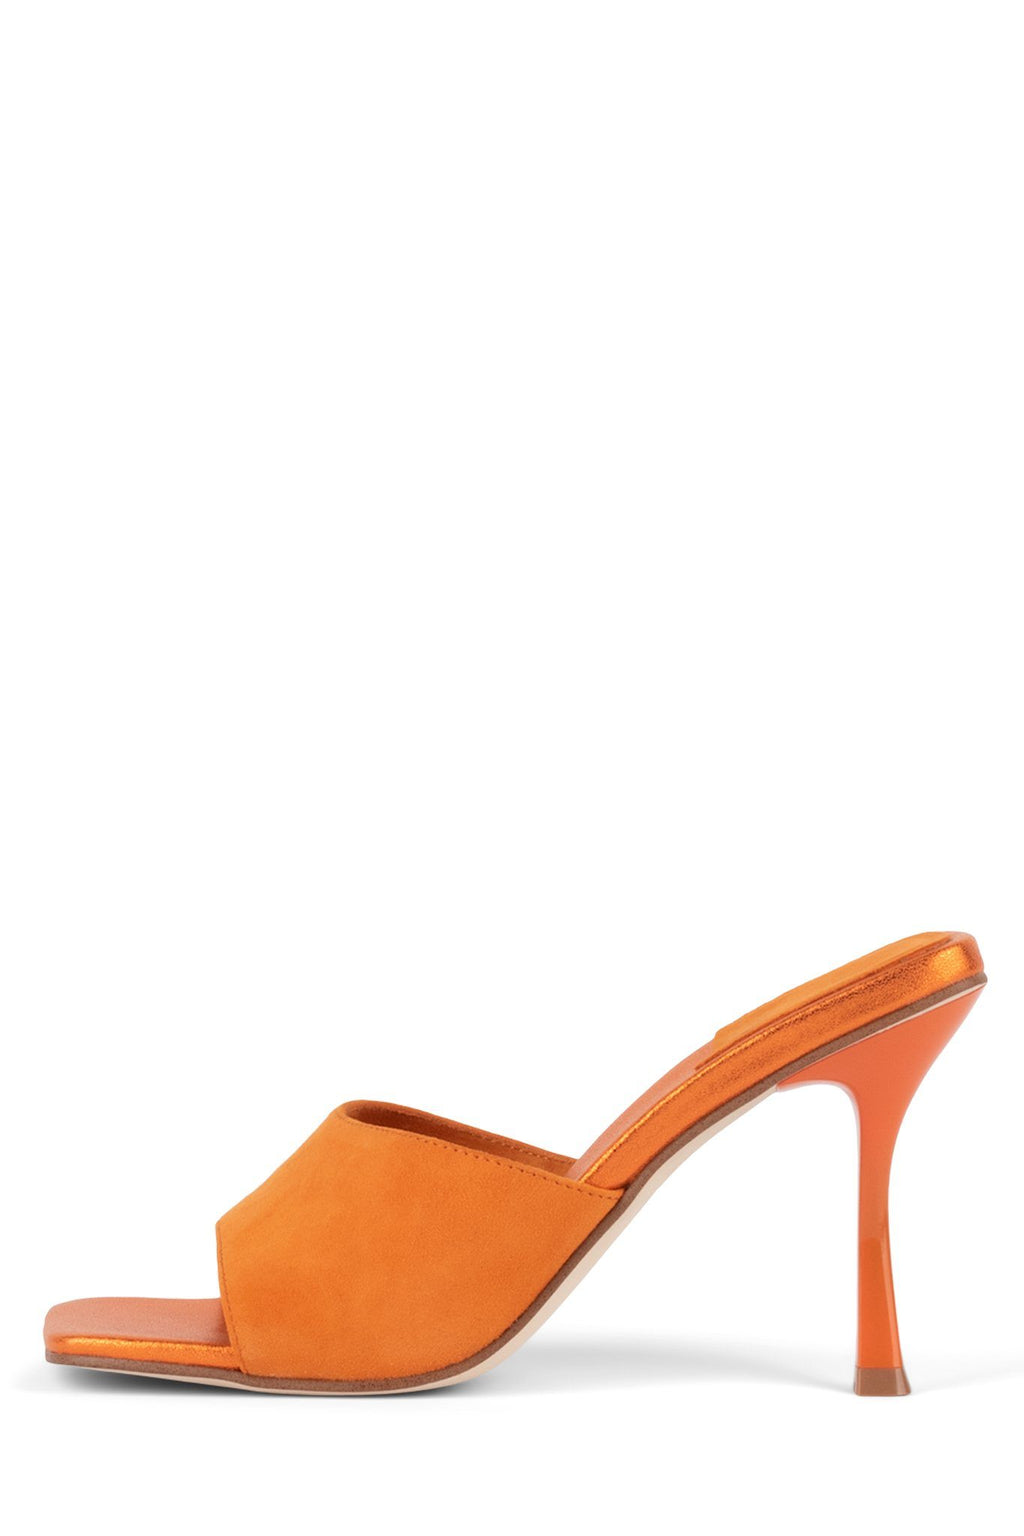 UTOPIC Heeled Sandal YYH Orange Suede Orange Metallic 6